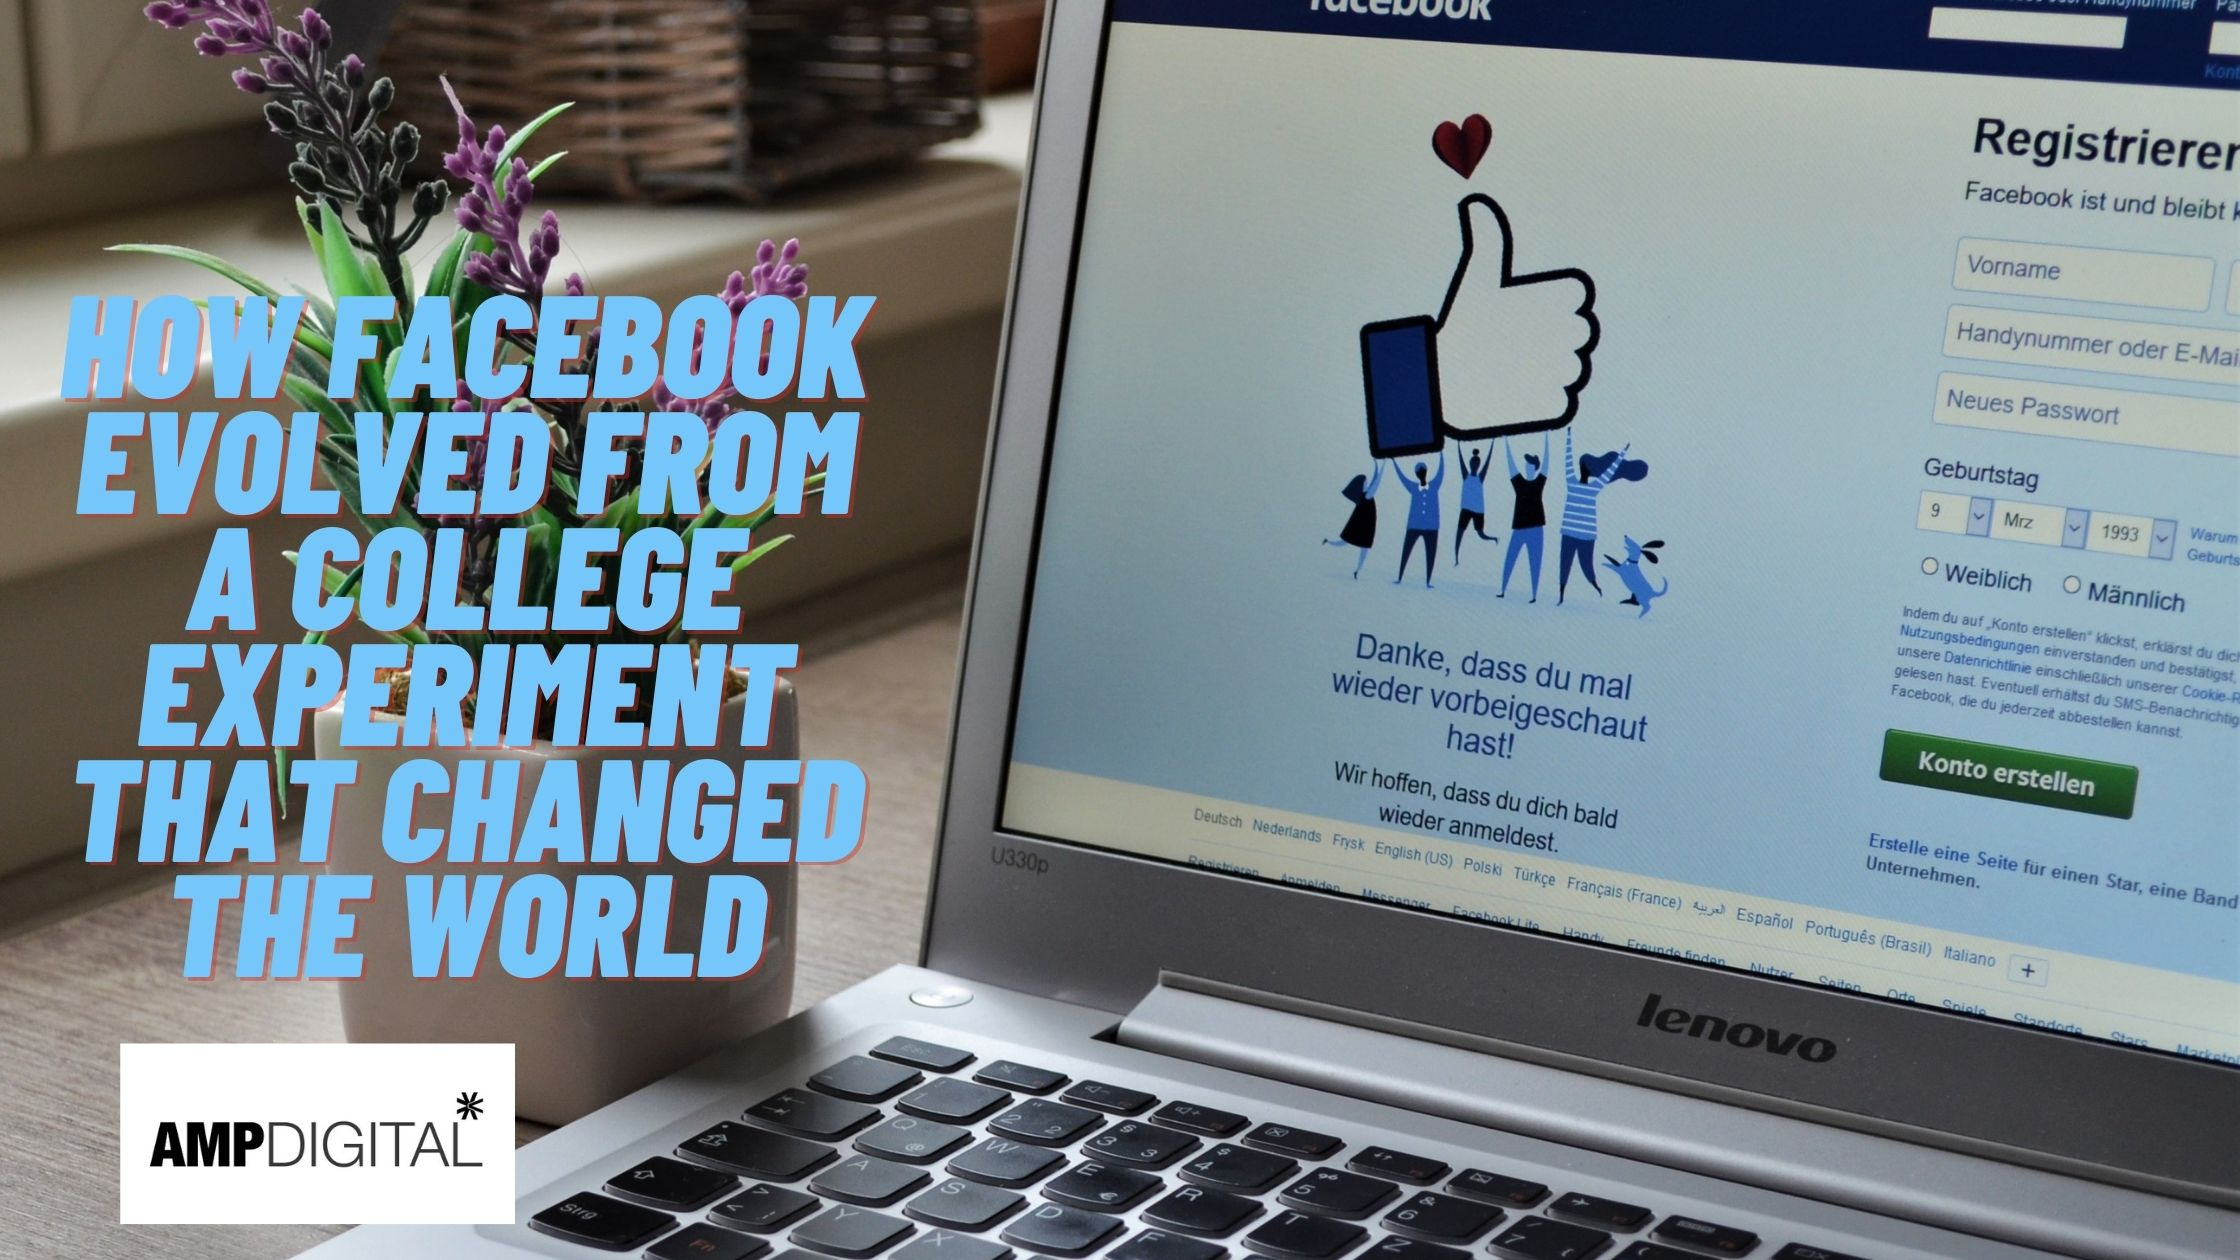 How Facebook evolved from a college experiment that changed the world